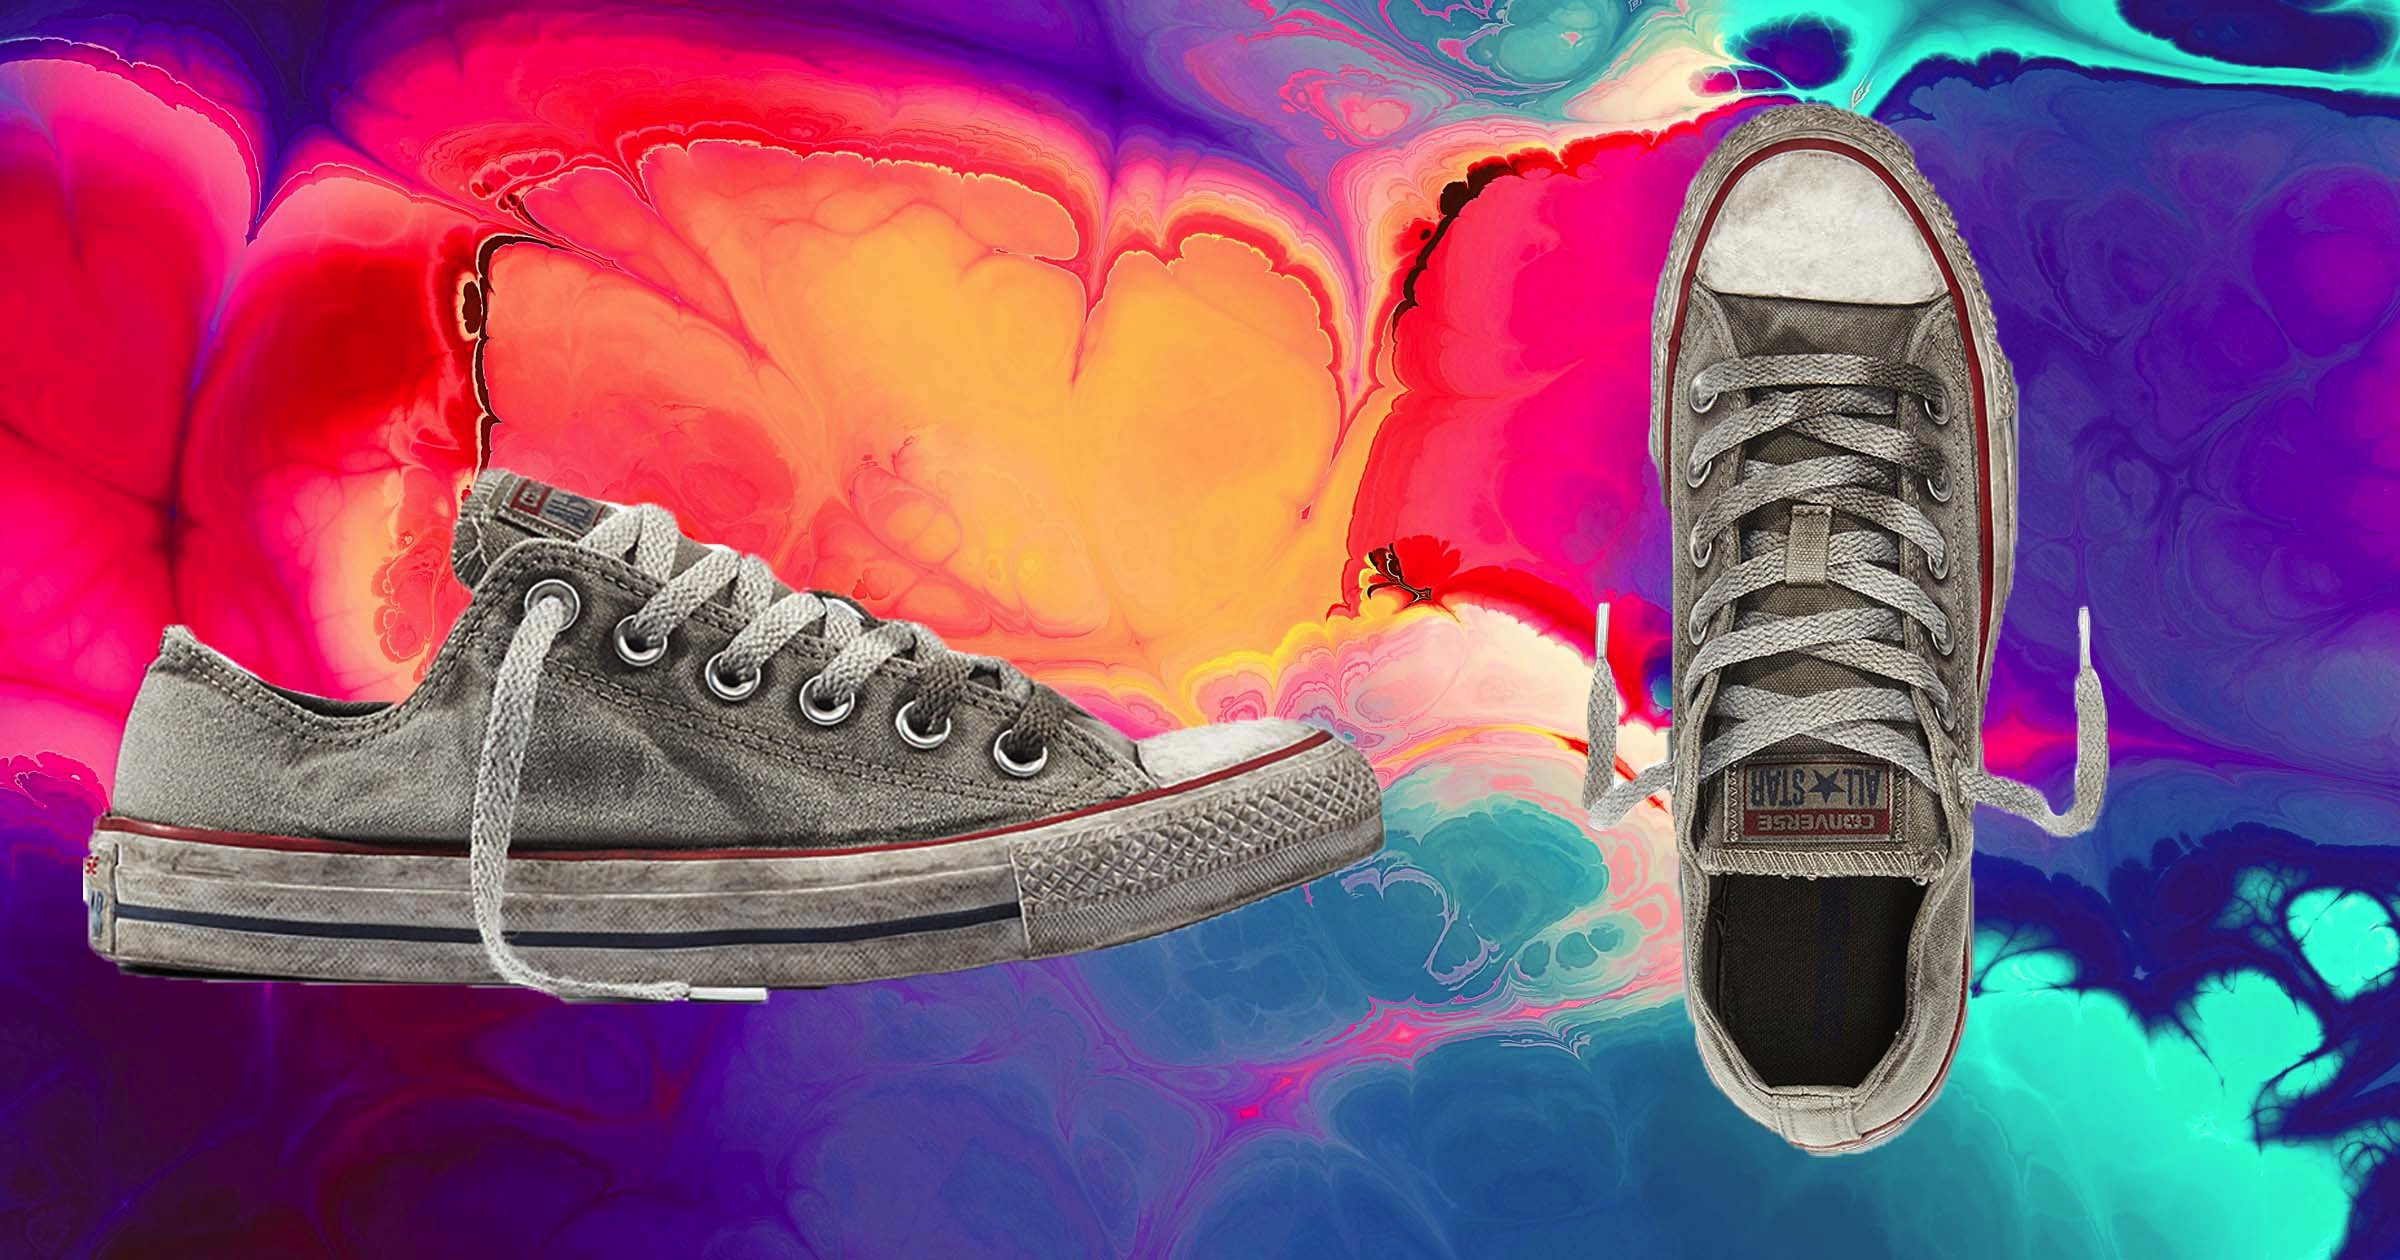 Converse sells shoes made to look dirty for £70 | Metro News